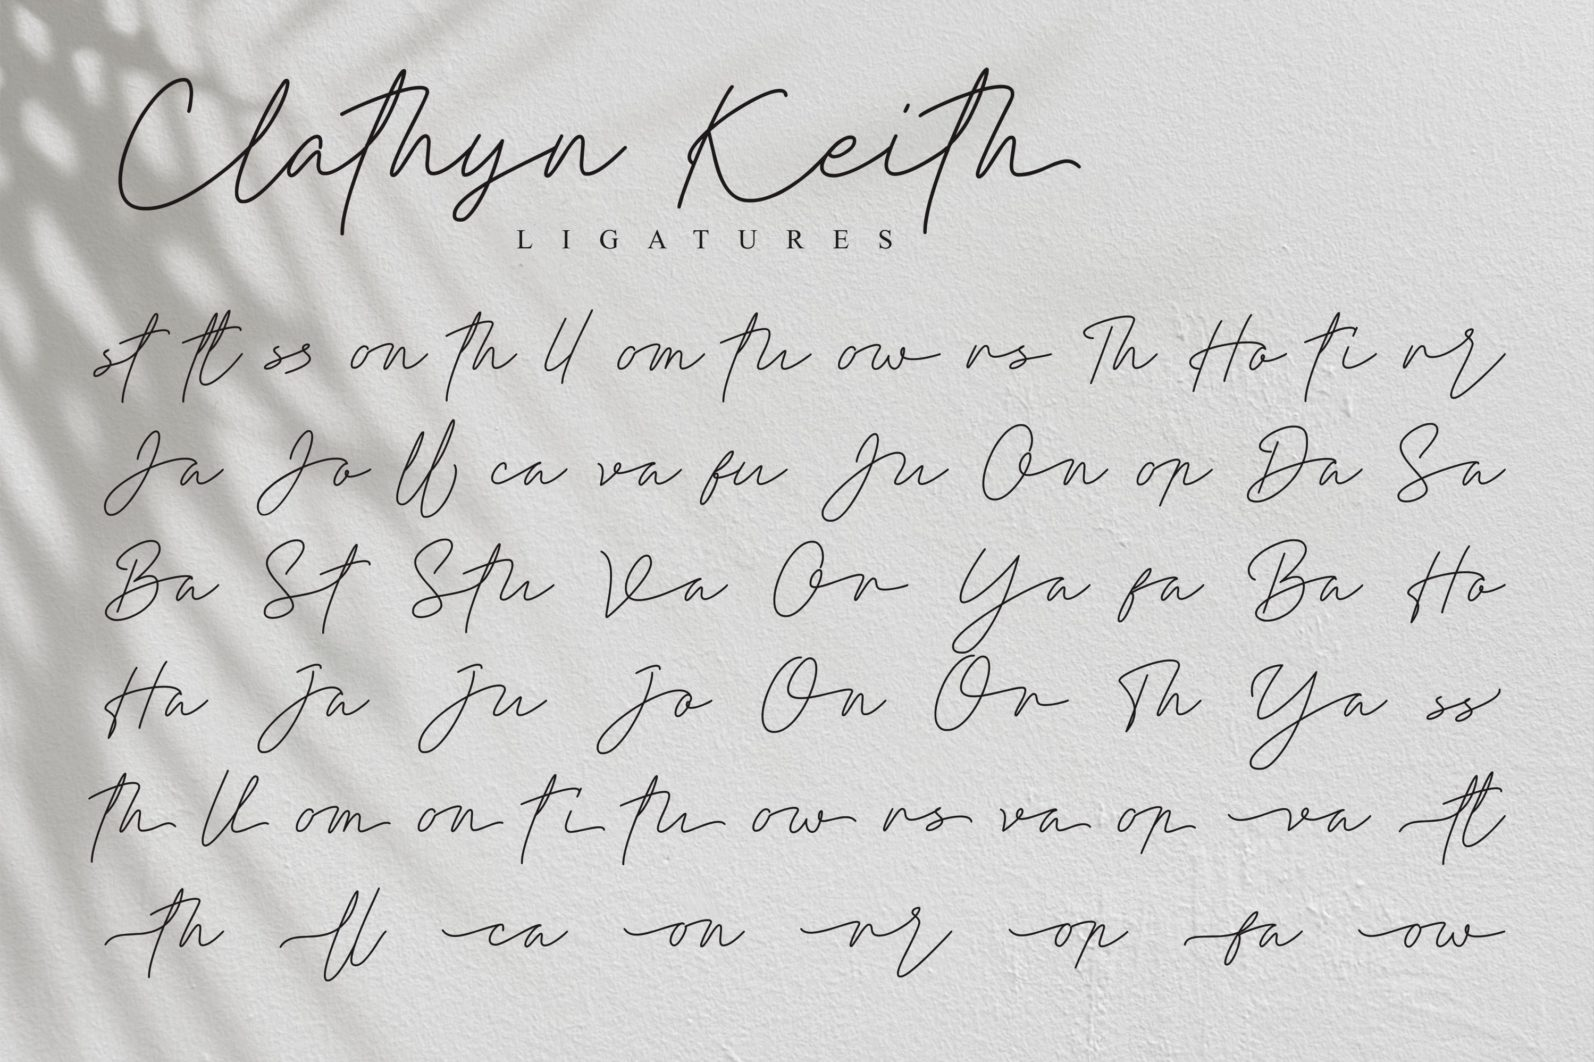 Clathyn Keith Signature - FormatFactory10 -